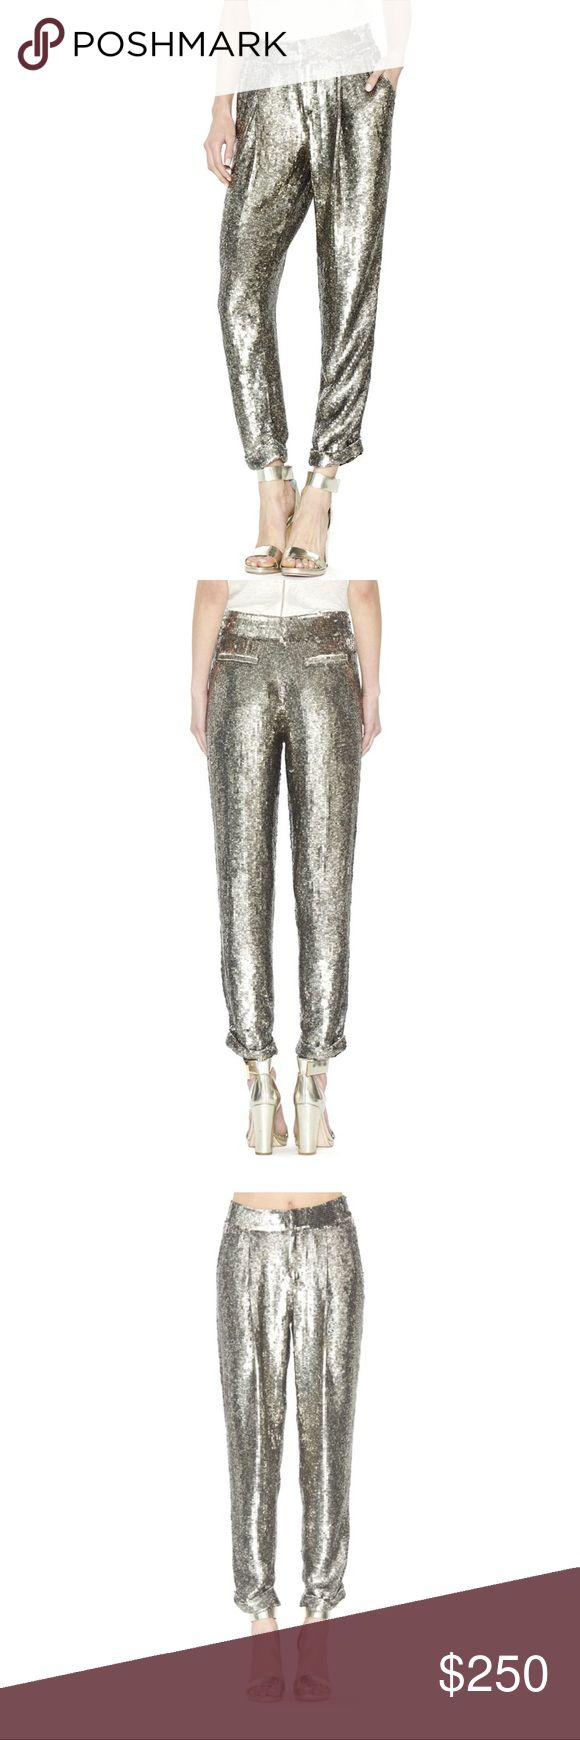 Alice and Olivia amazing silver sequin trousers Bold, Unapologetic, Super Edgy, These Sequin Pants Are Not For The Faint Of Heart. Fully Embellished, You Certainly Won't Be Missed. If You're Looking To Make A Statement, These Trousers Will Do The Trick. But Be Prepared-You'll Definitely Be The Life Of The Party. High Waist Front Zipper Closure - Zip fly with hook-and-bar closure - Slash pockets - Front pleats - Cuffed hems - Allover sequin construction, fully lined Shell:100% polyester…